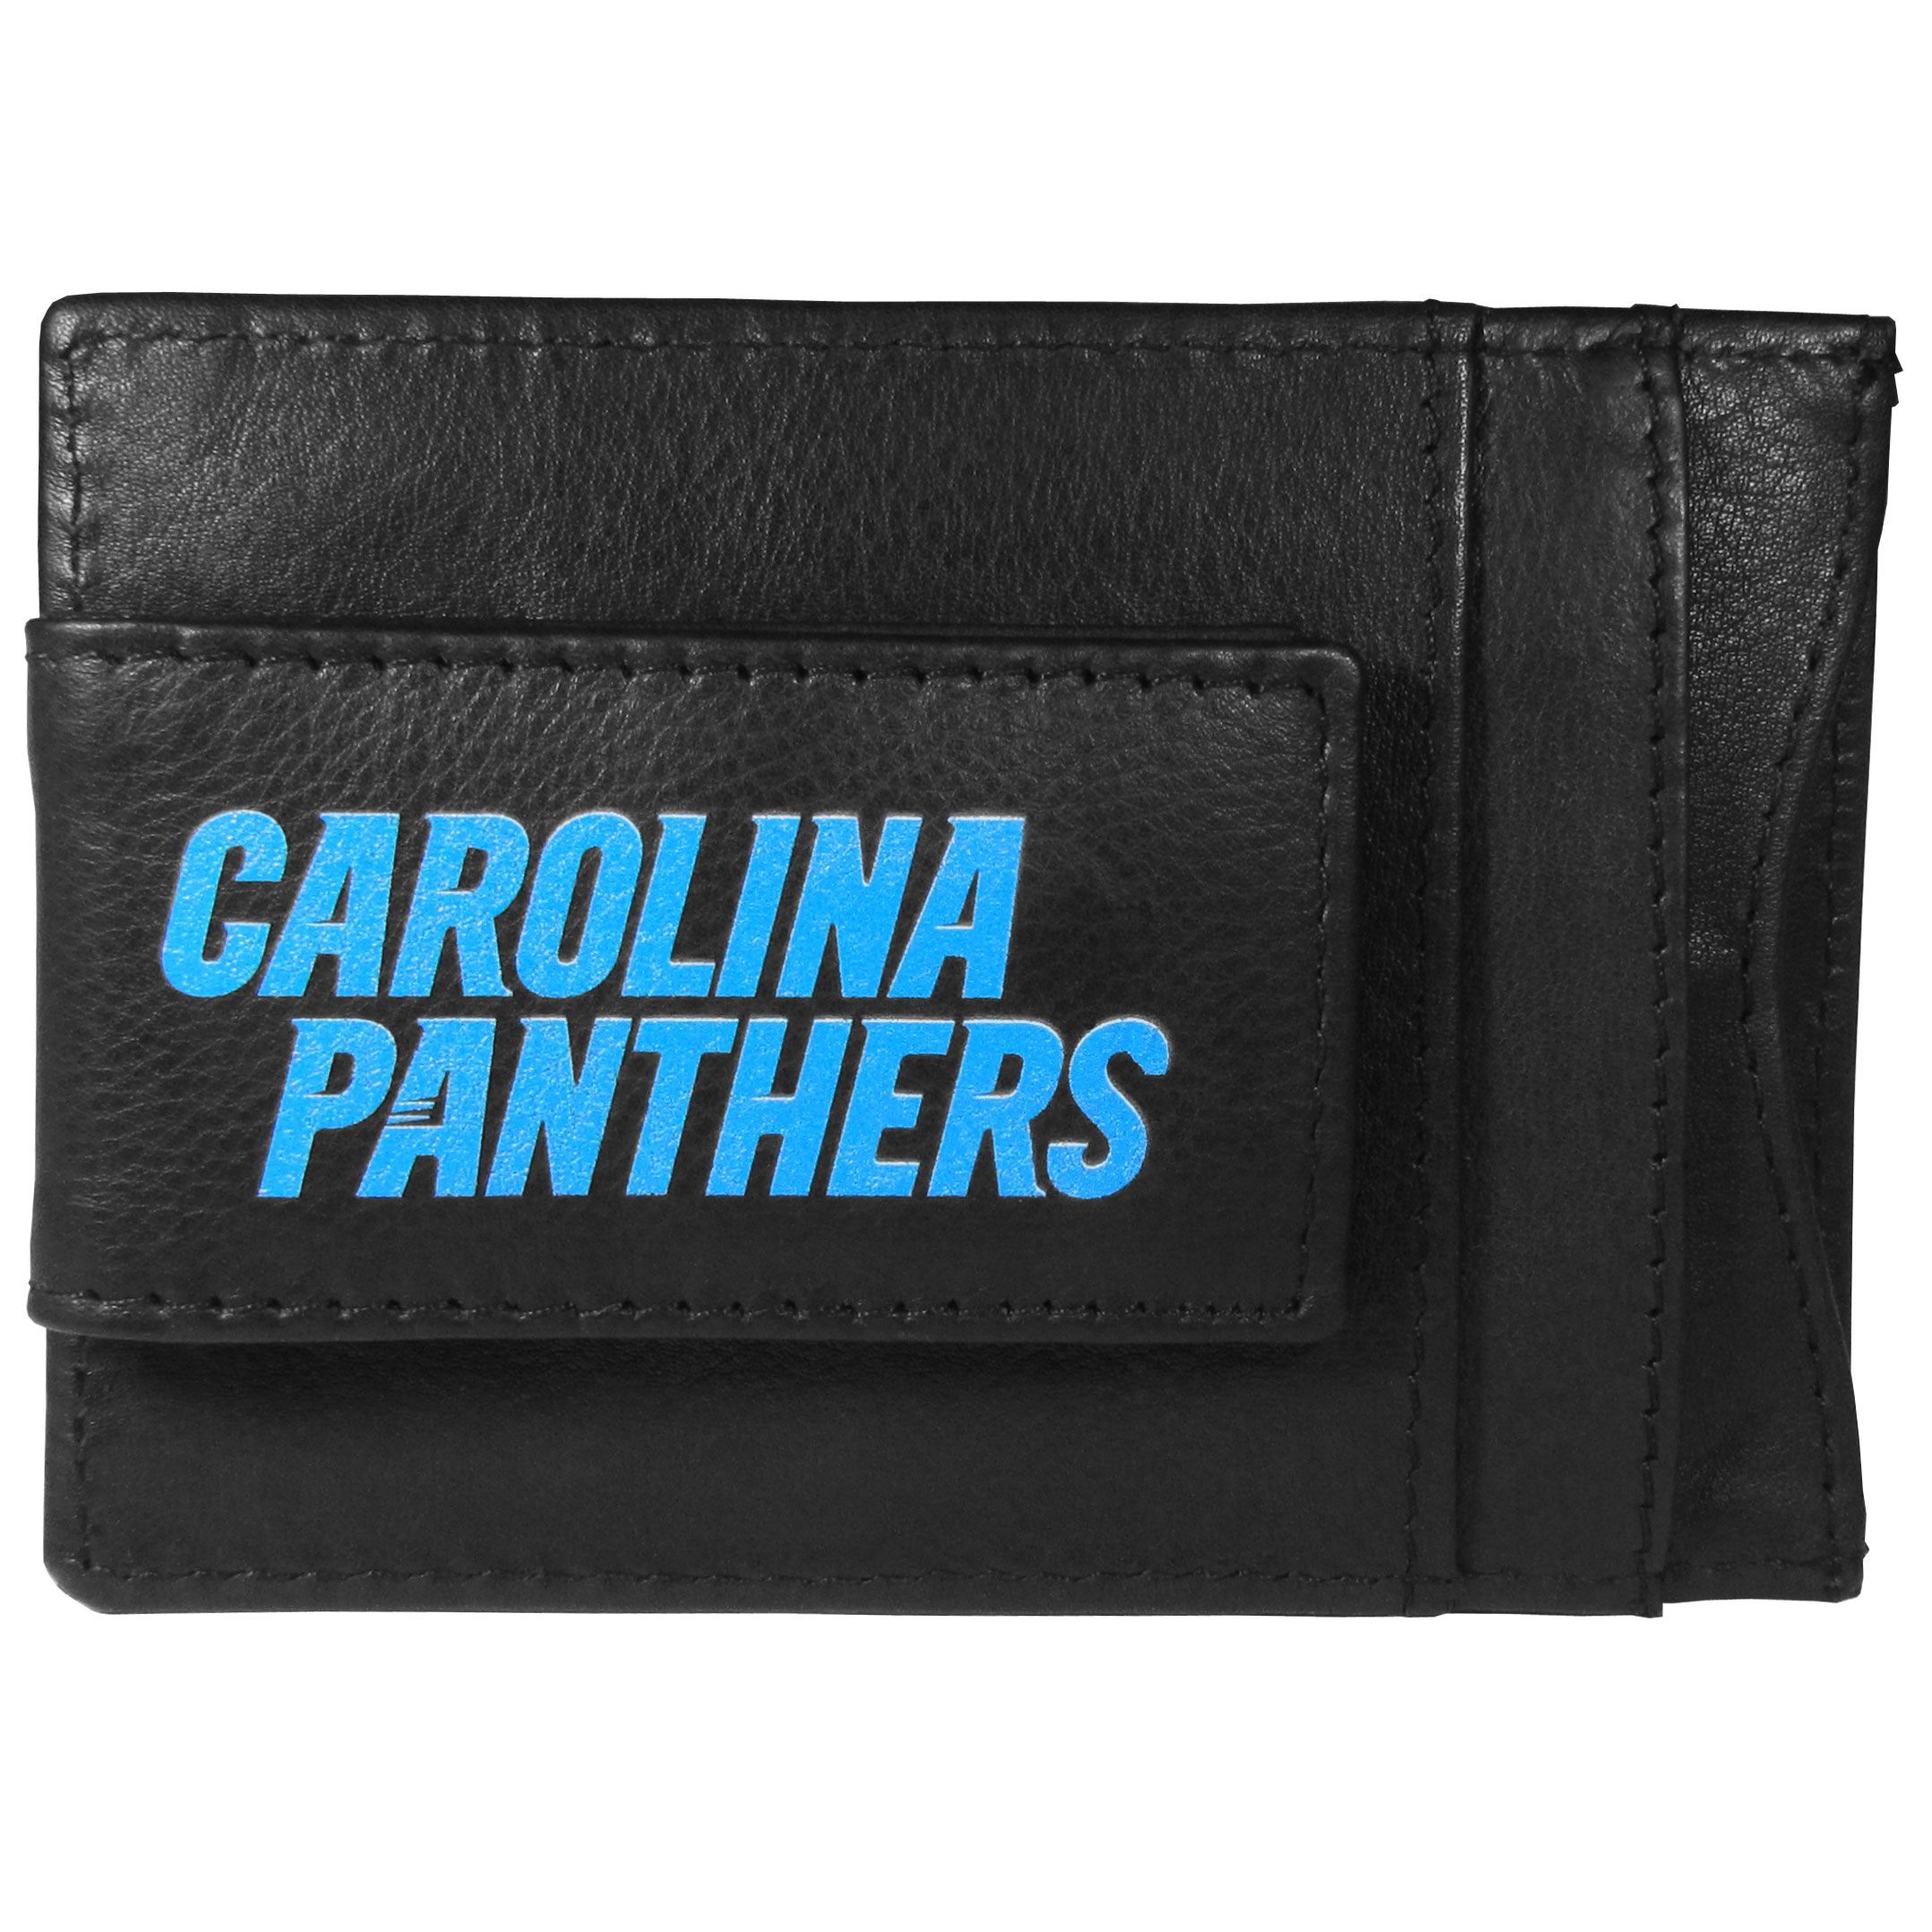 Carolina Panthers Logo Leather Cash and Cardholder - This super slim leather wallet lets you have all the benefits of a money clip while keeping the organization of a wallet. On one side of this front pocket wallet there is a strong, magnetic money clip to keep your cash easily accessible and the?Carolina Panthers team logo on the front. The versatile men's accessory is a perfect addition to your fan apparel.